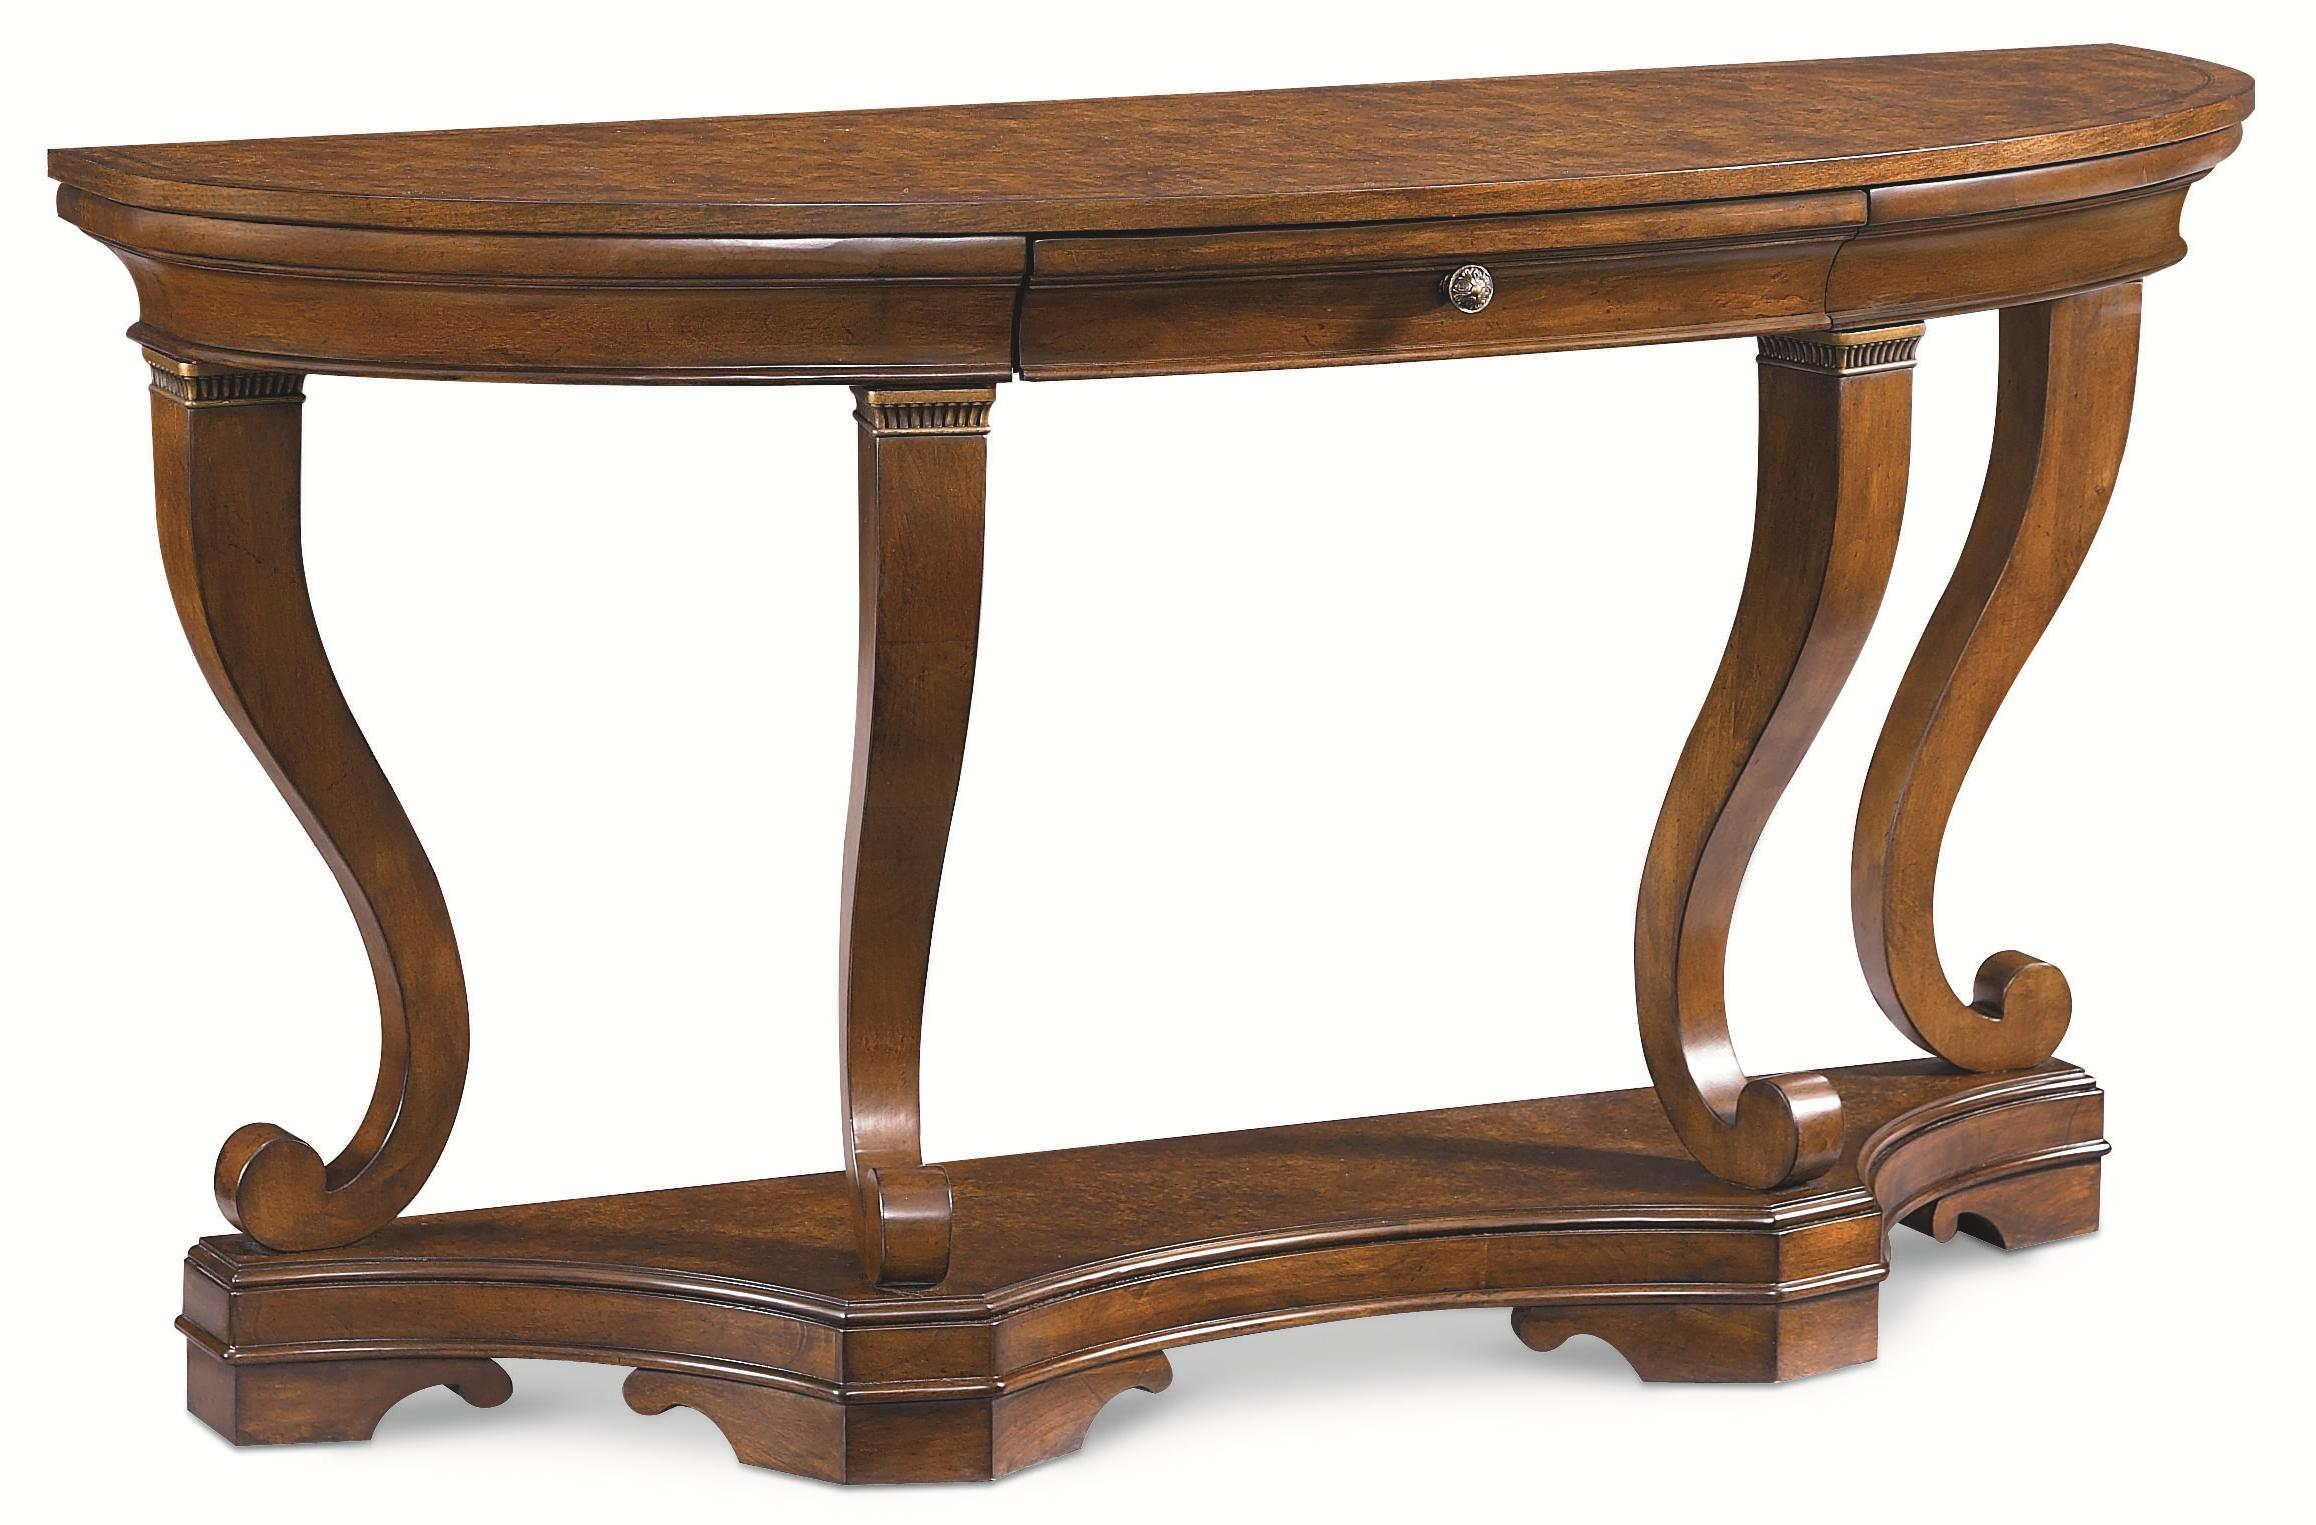 Thomasville® Deschanel Sofa Table - Item Number: 46731-710